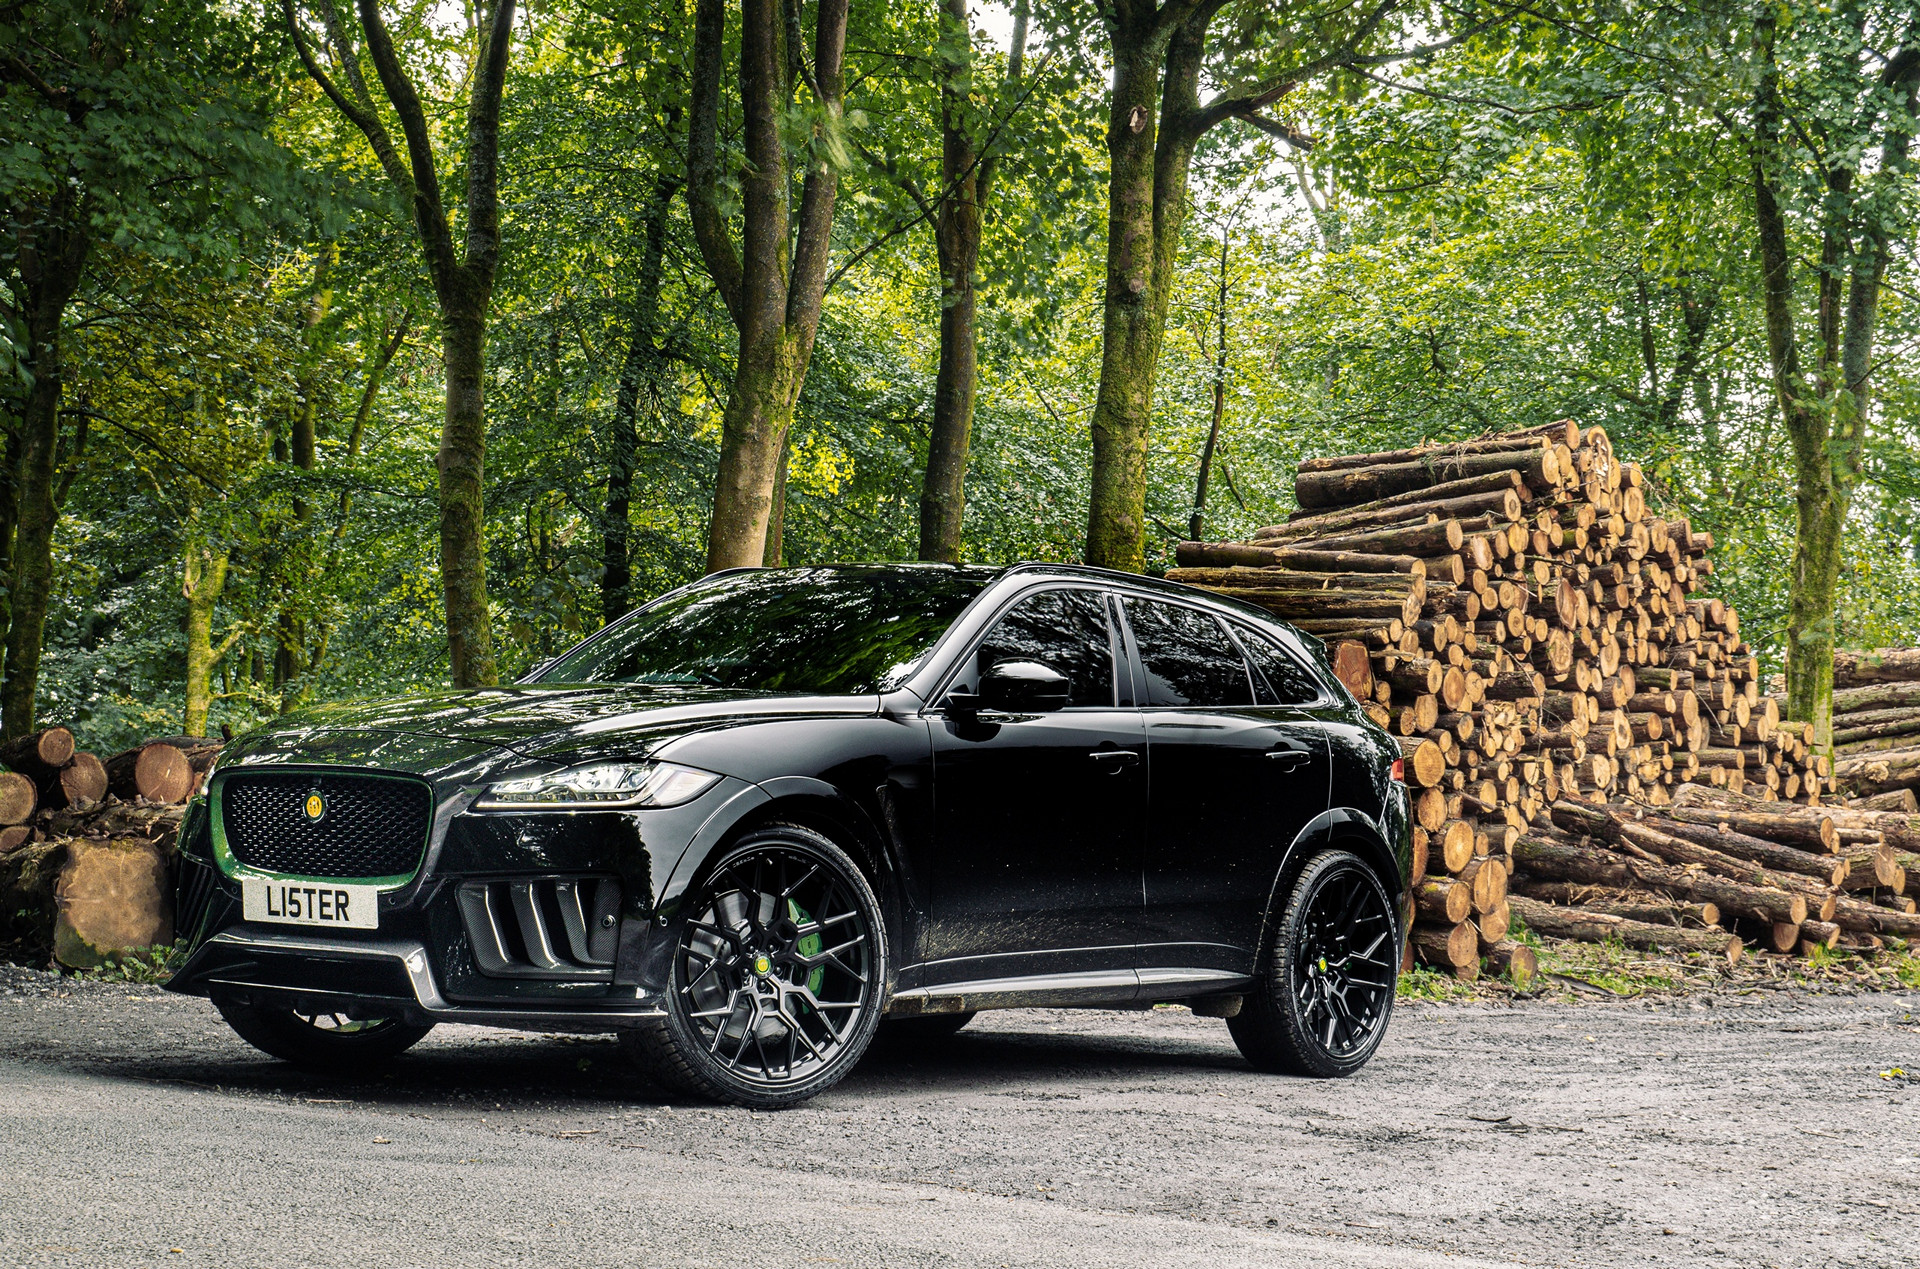 Lister Motor Company has unveiled Stealth, a crossover utility vehicle based on the Jaguar F-Pace SVR. The car produces 666 horsepower (497 kilowatts) and tops out at 314 km/h (195 mph), making it the fastest production vehicle of its kind in Great Britain.